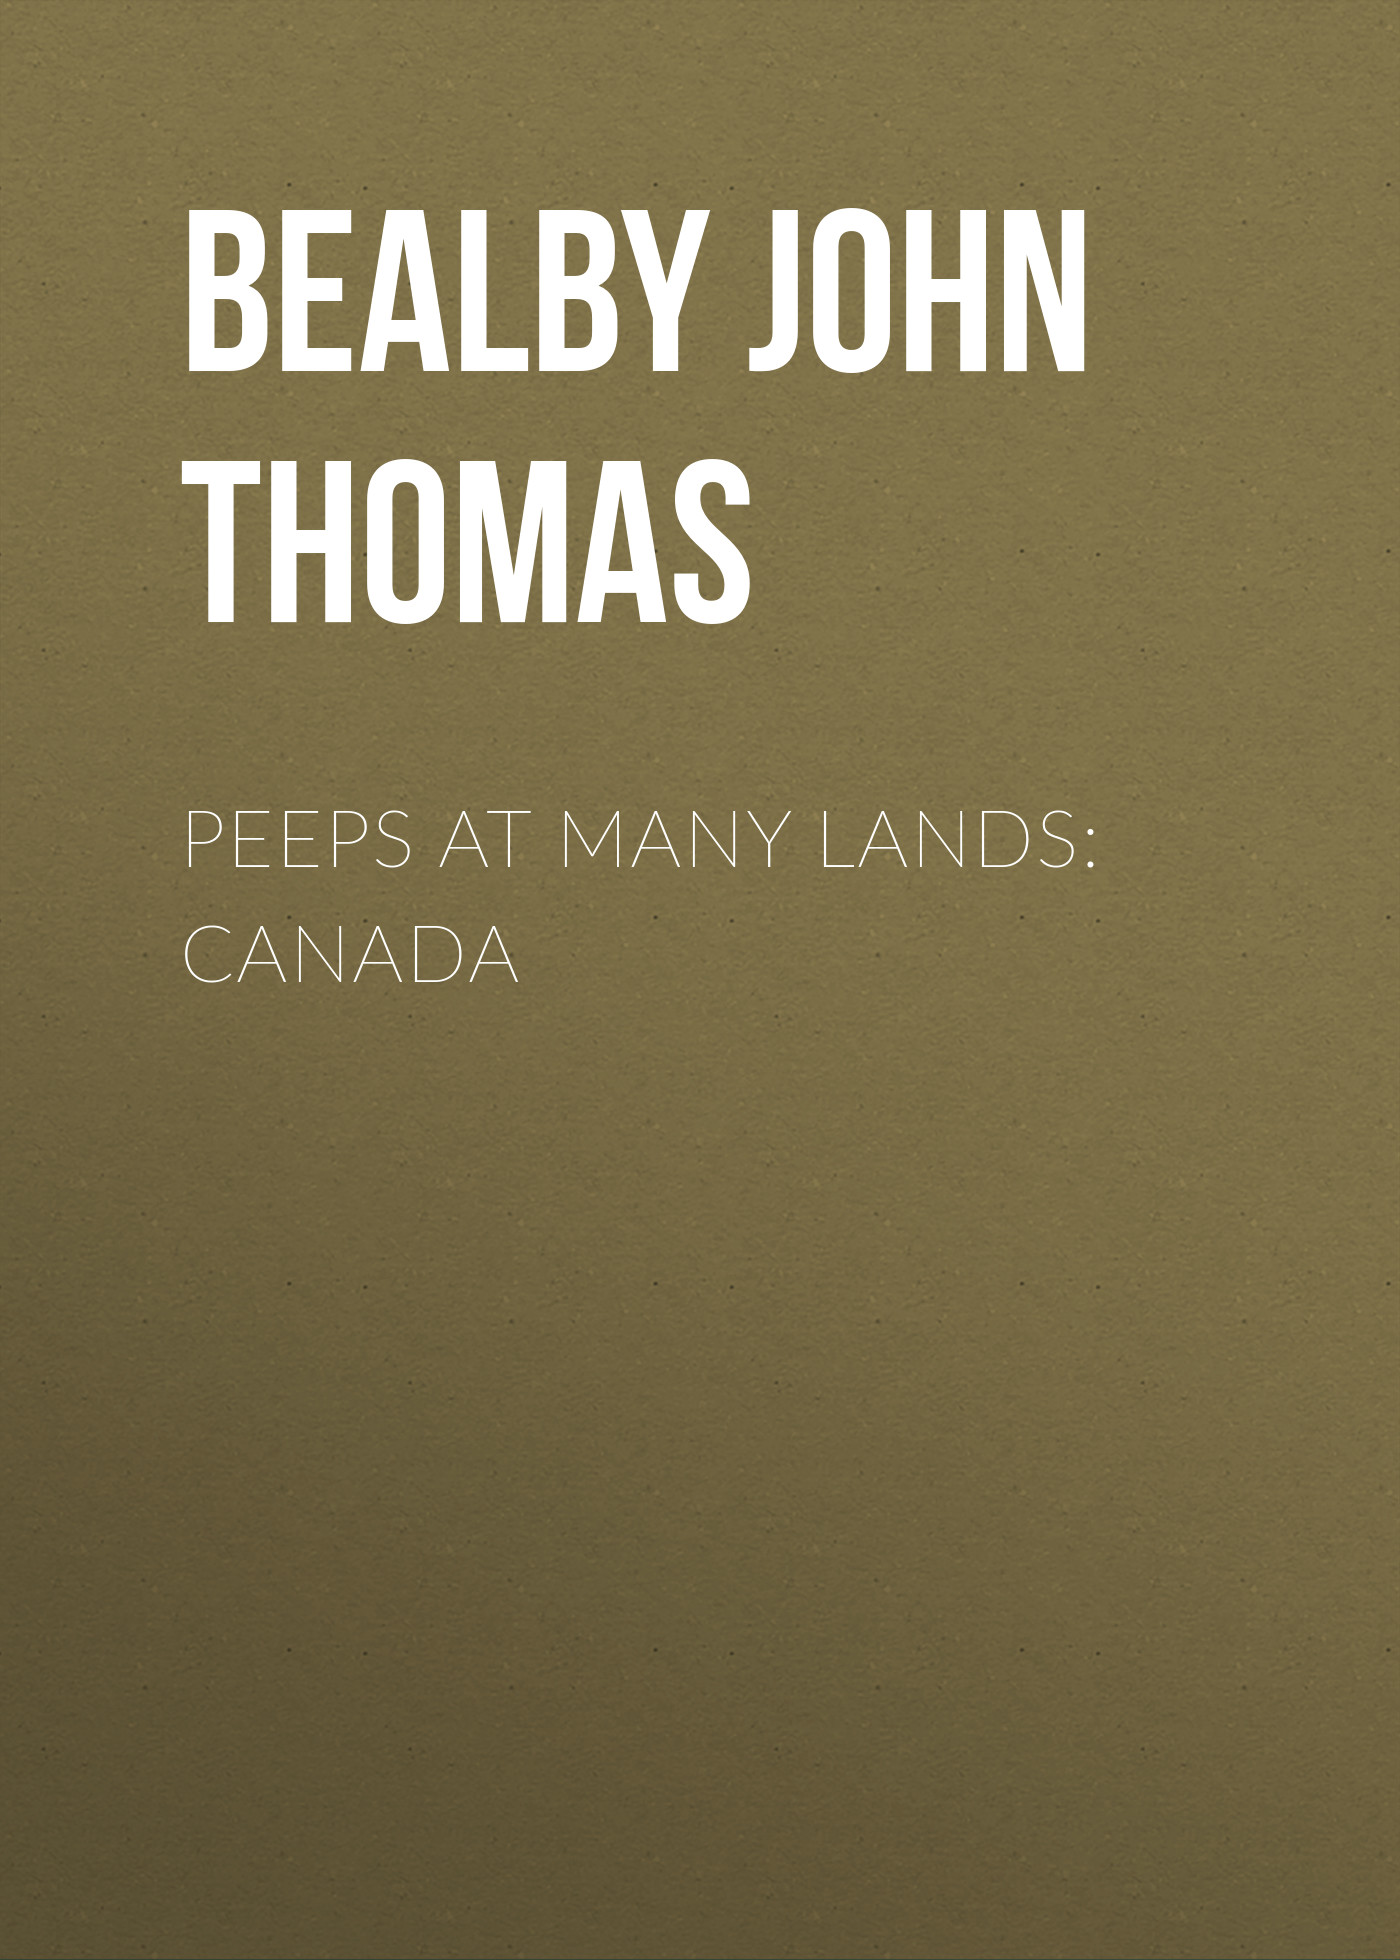 цена Bealby John Thomas Peeps at Many Lands: Canada онлайн в 2017 году